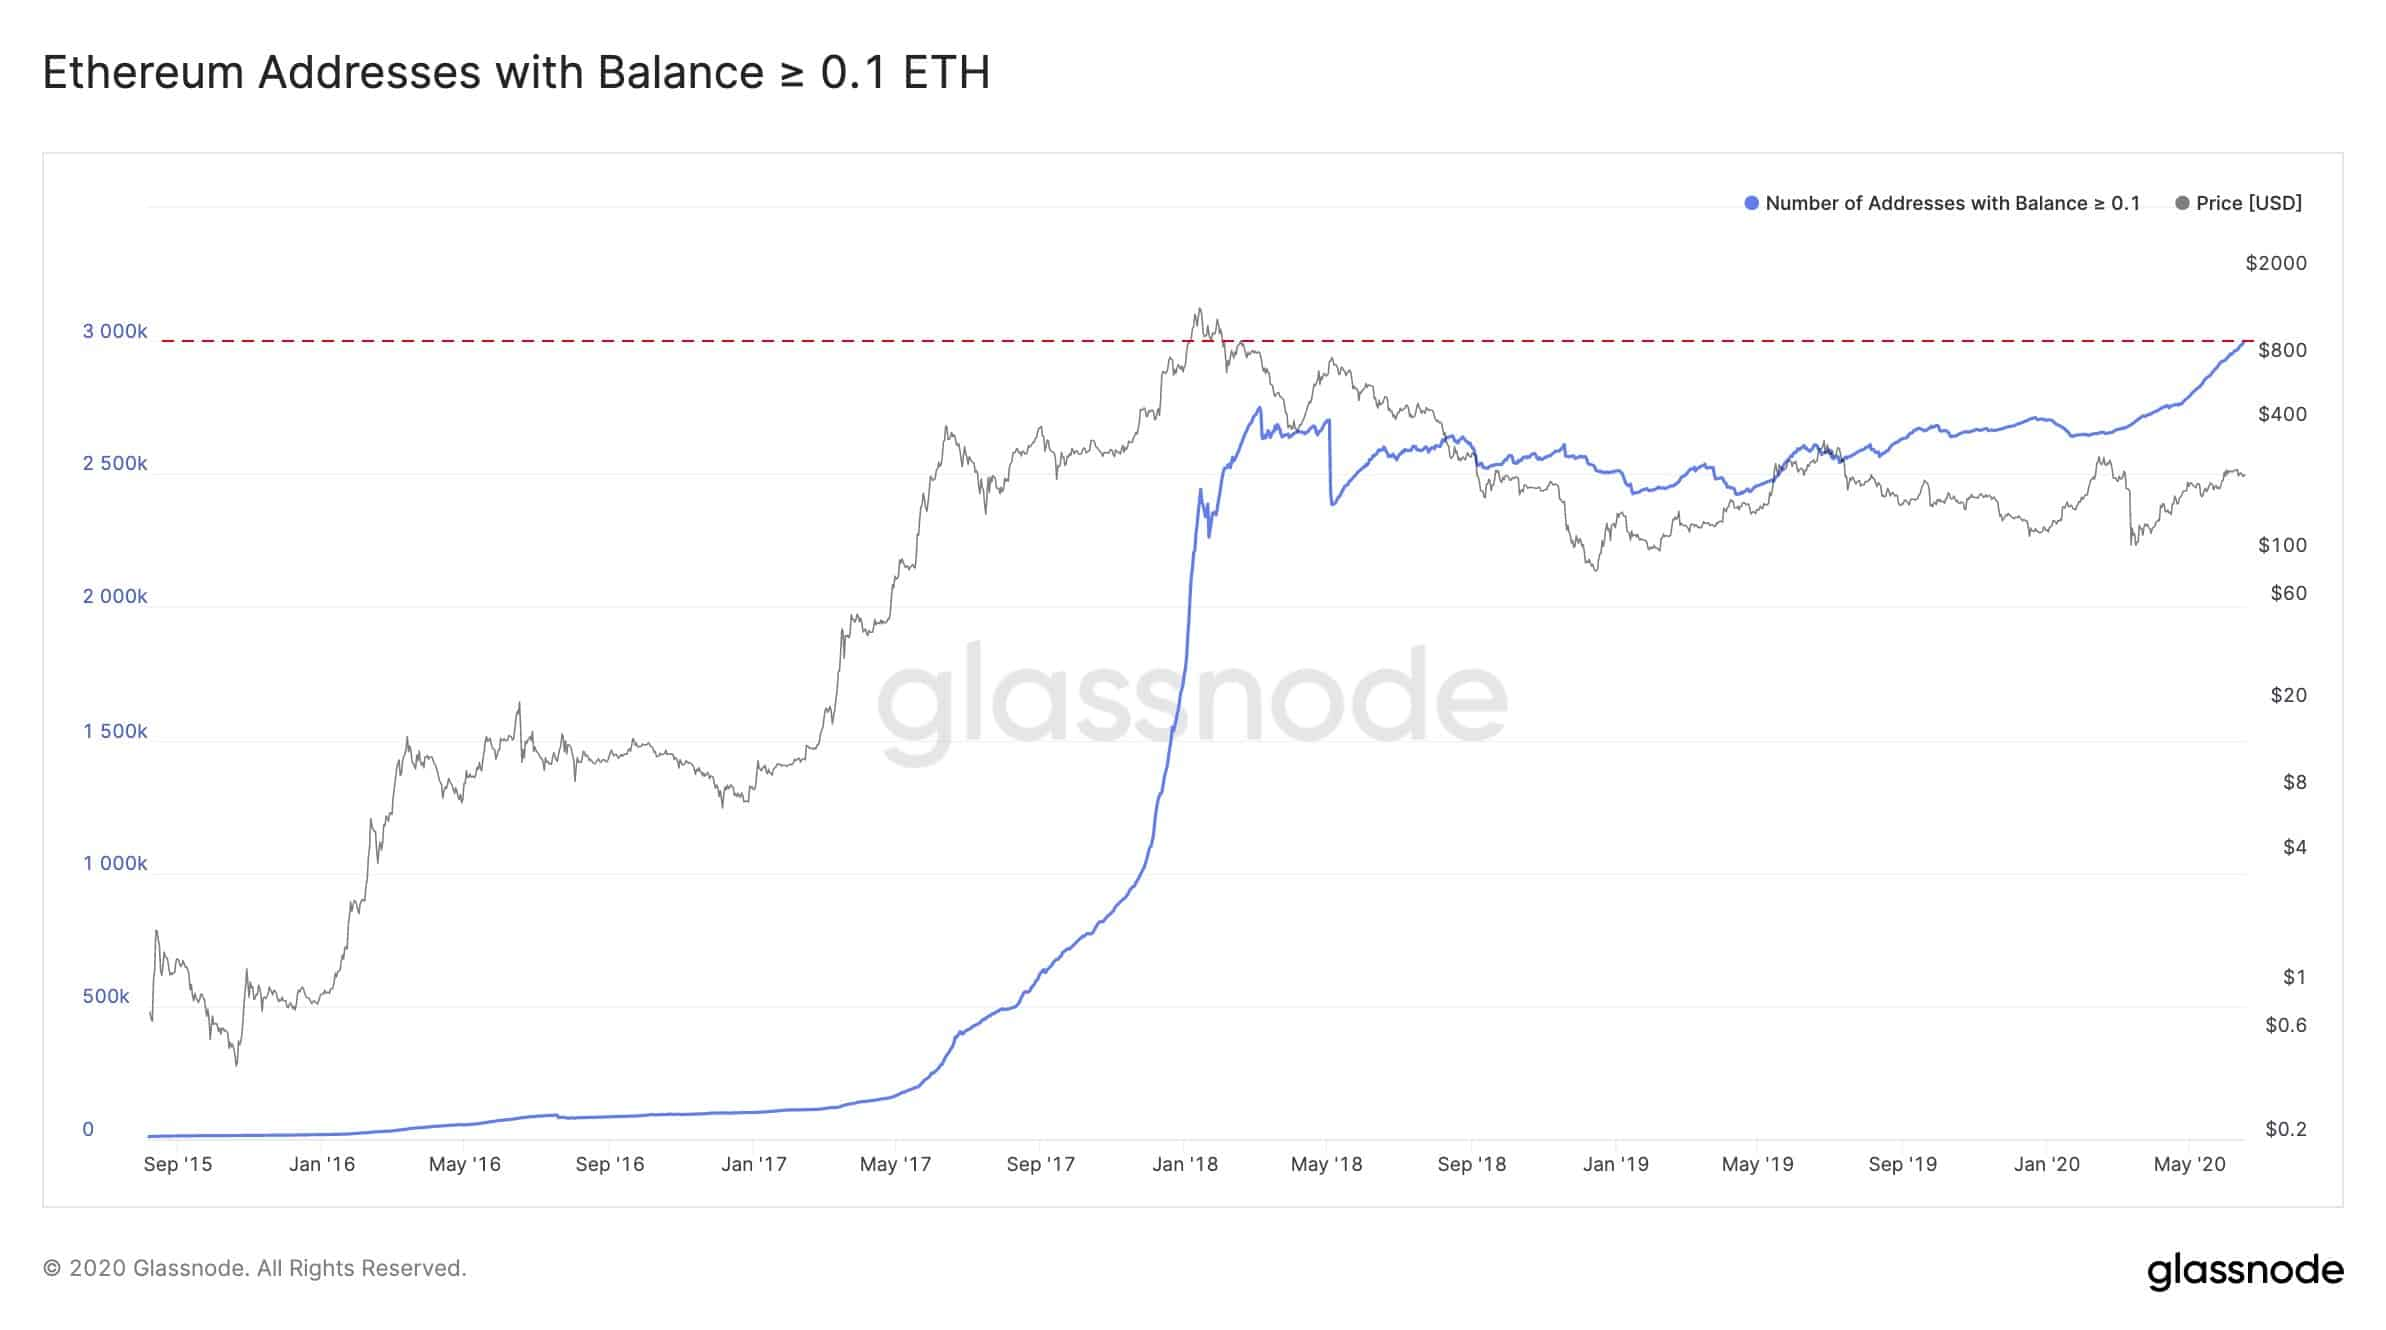 Ethereum Addresses With At Least 0.1 ETH. Source: Glassnode